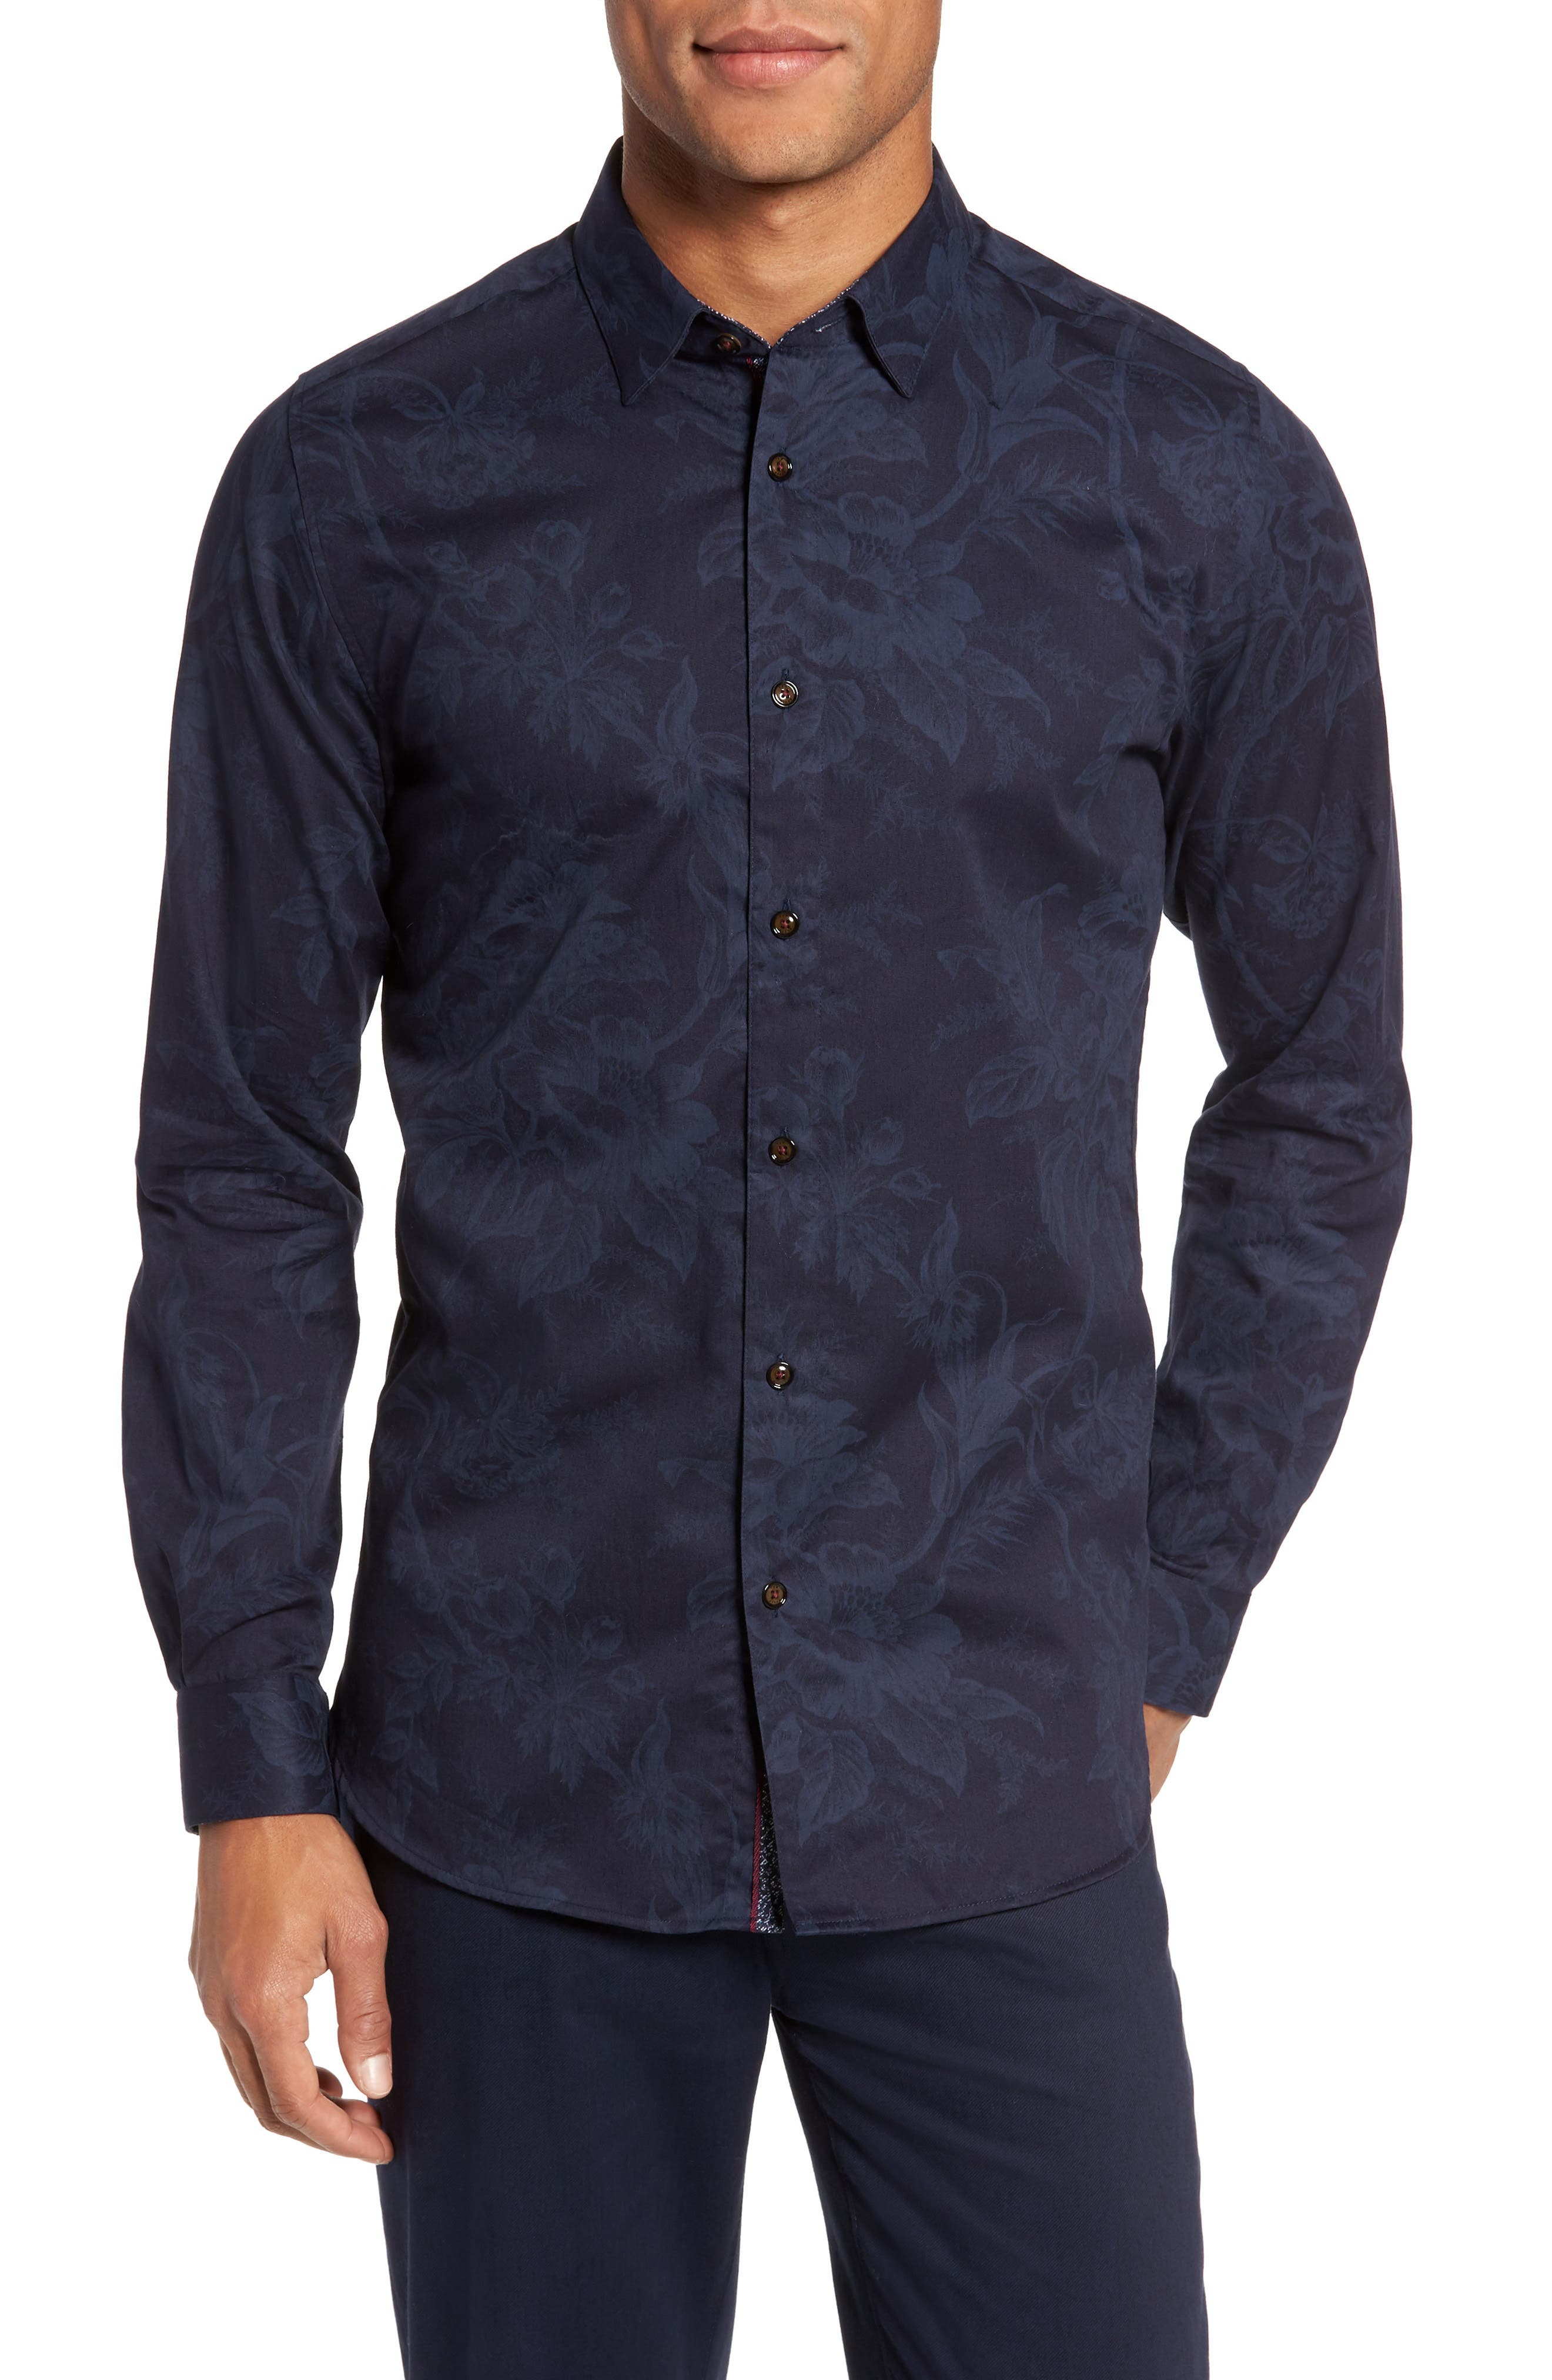 Alternate Image 1 Selected - Ted Baker London Modern Slim Fit Floral Print Sport Shirt